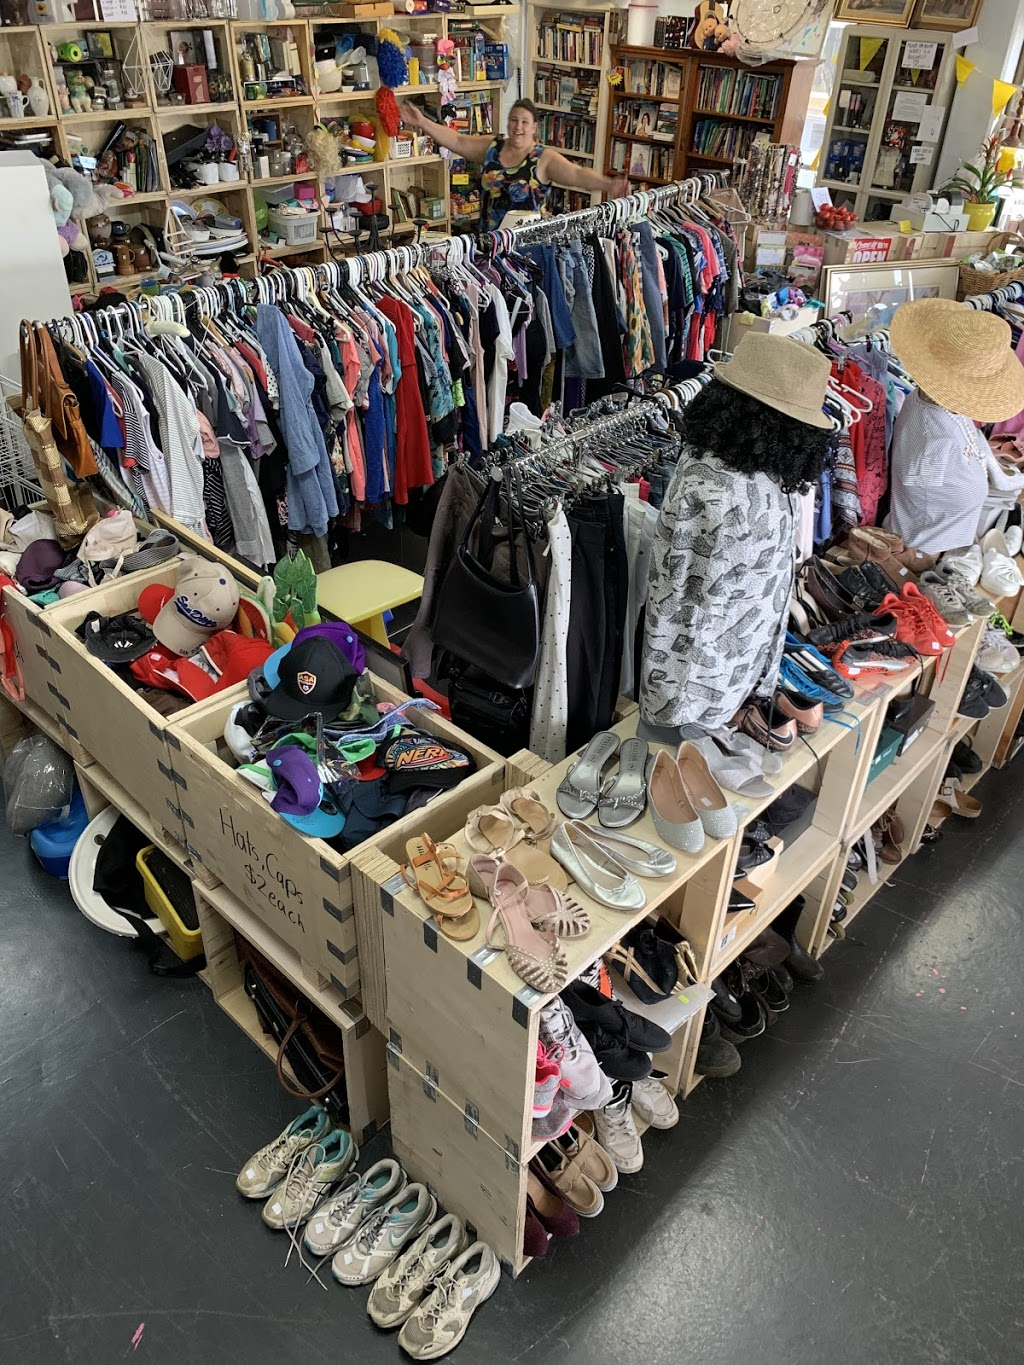 Ninas PreLoved Goods | store | Number 483, George St, South Windsor NSW 2756, Australia | 0404169855 OR +61 404 169 855